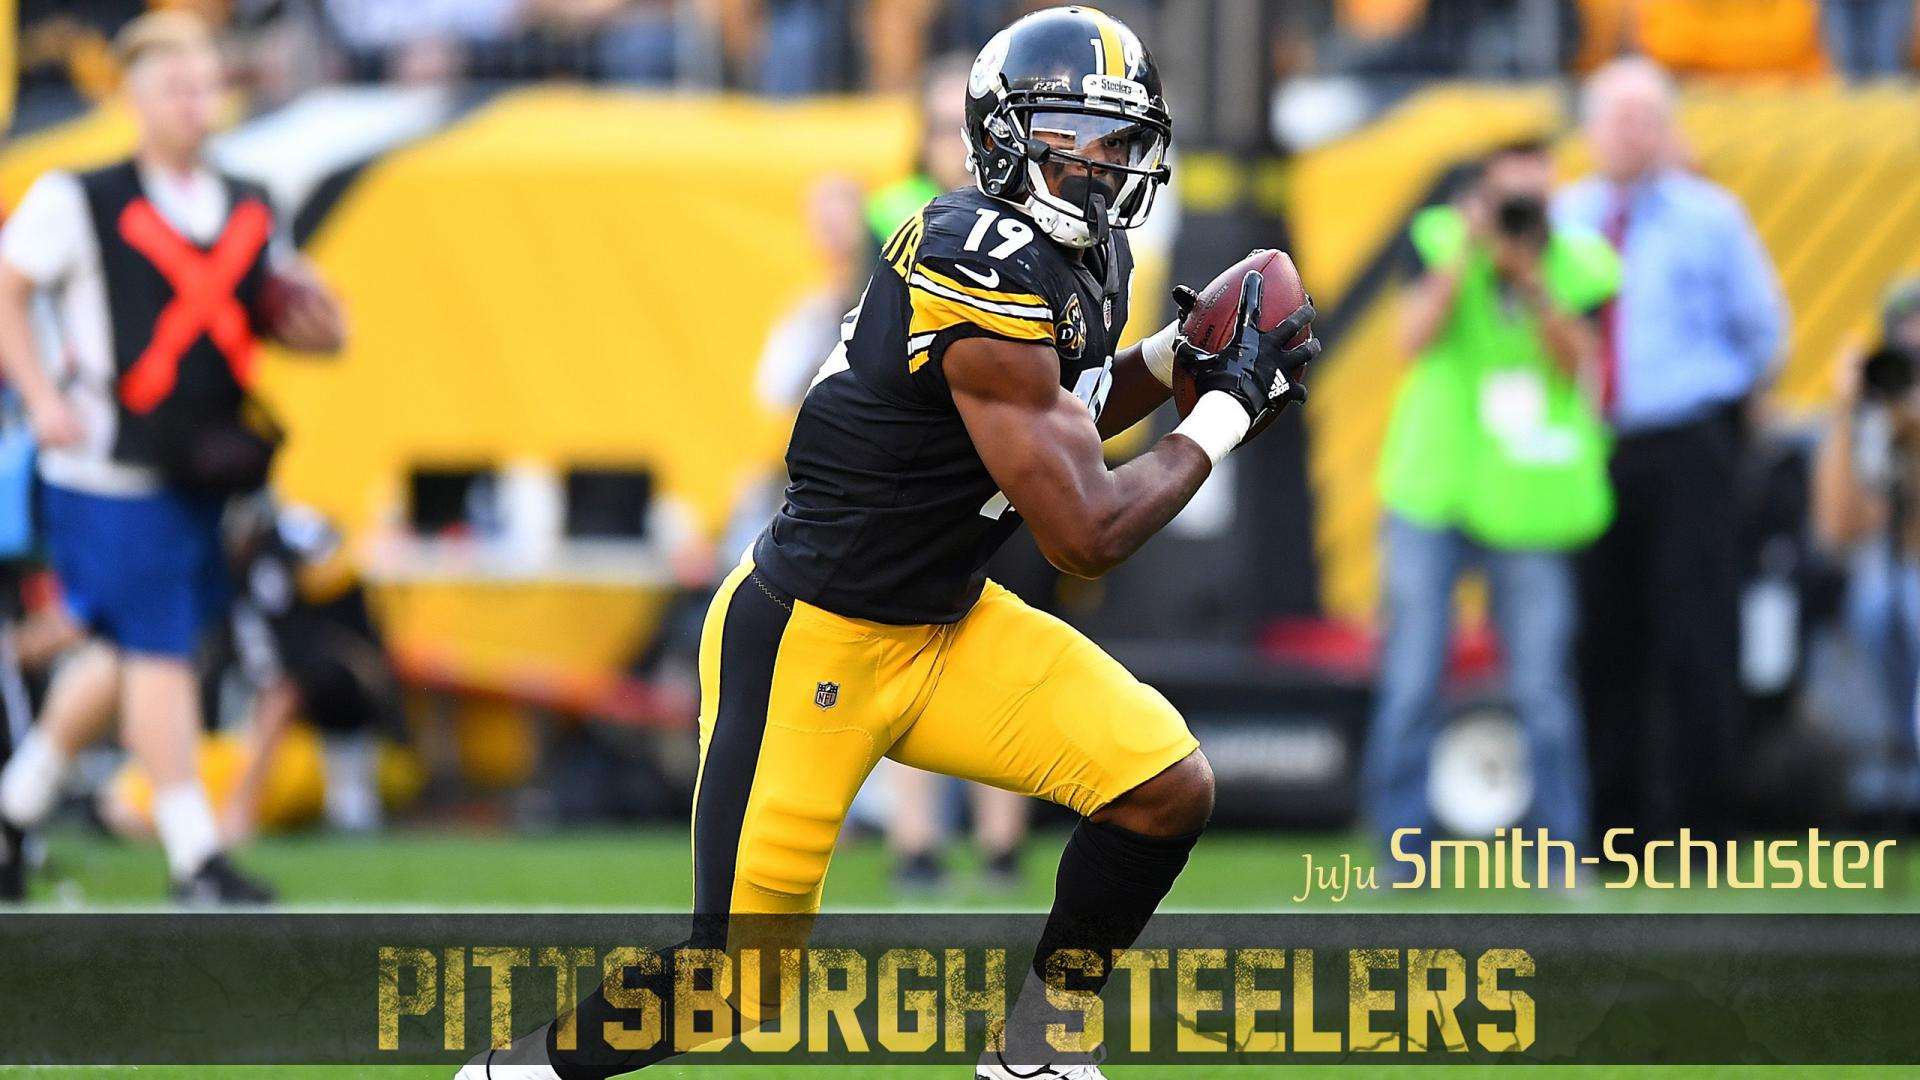 pittsburgh steelers player wallpaper juju smith schuster steeler logos over time steelers logo clip art